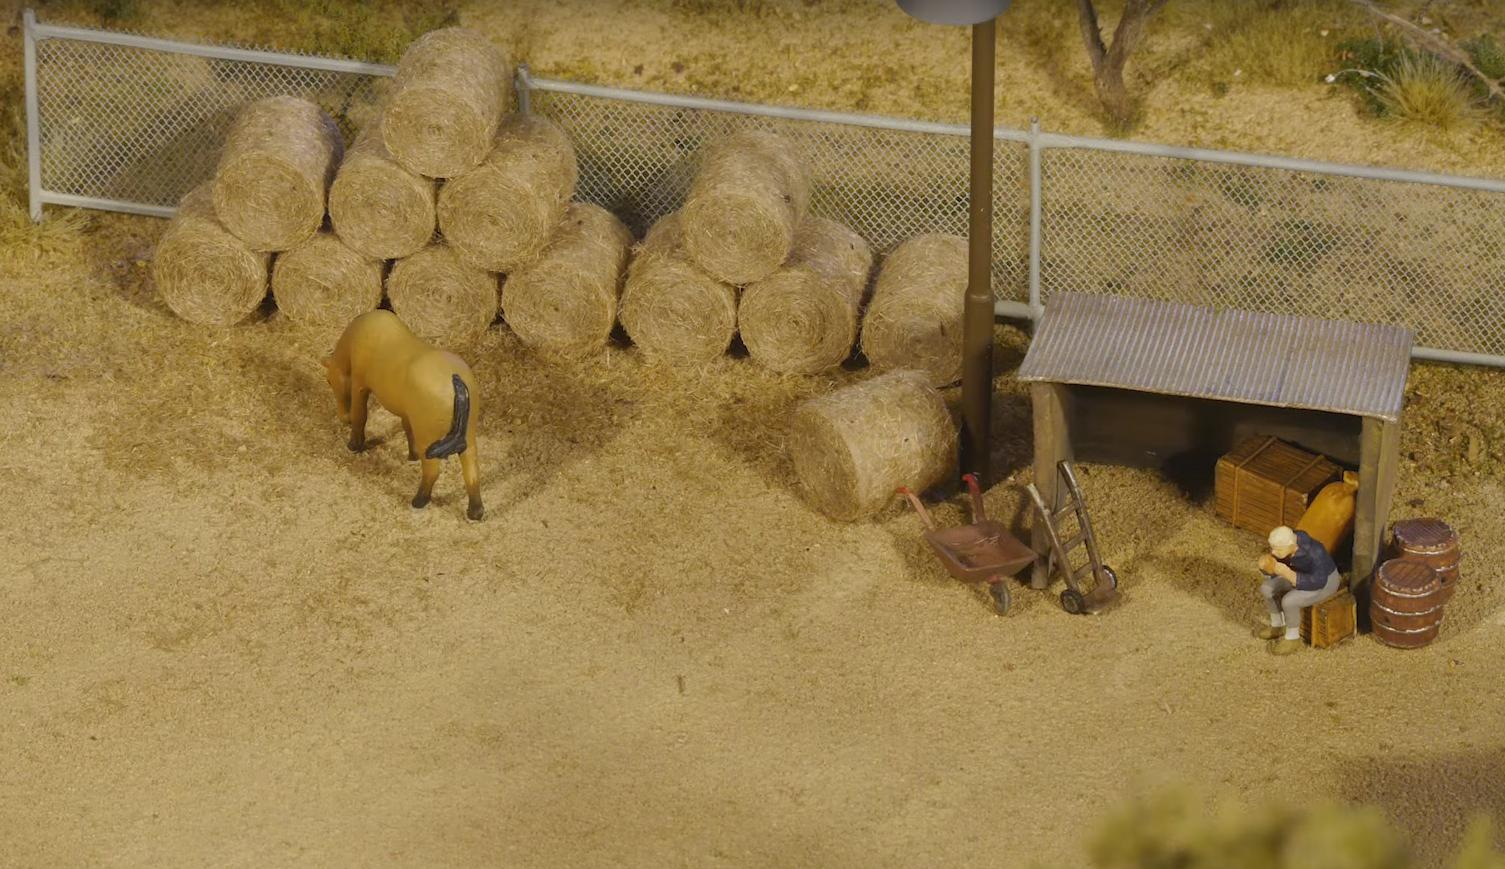 The Process of Making Realistic Miniature Hay Bales Is Quite Fascinating